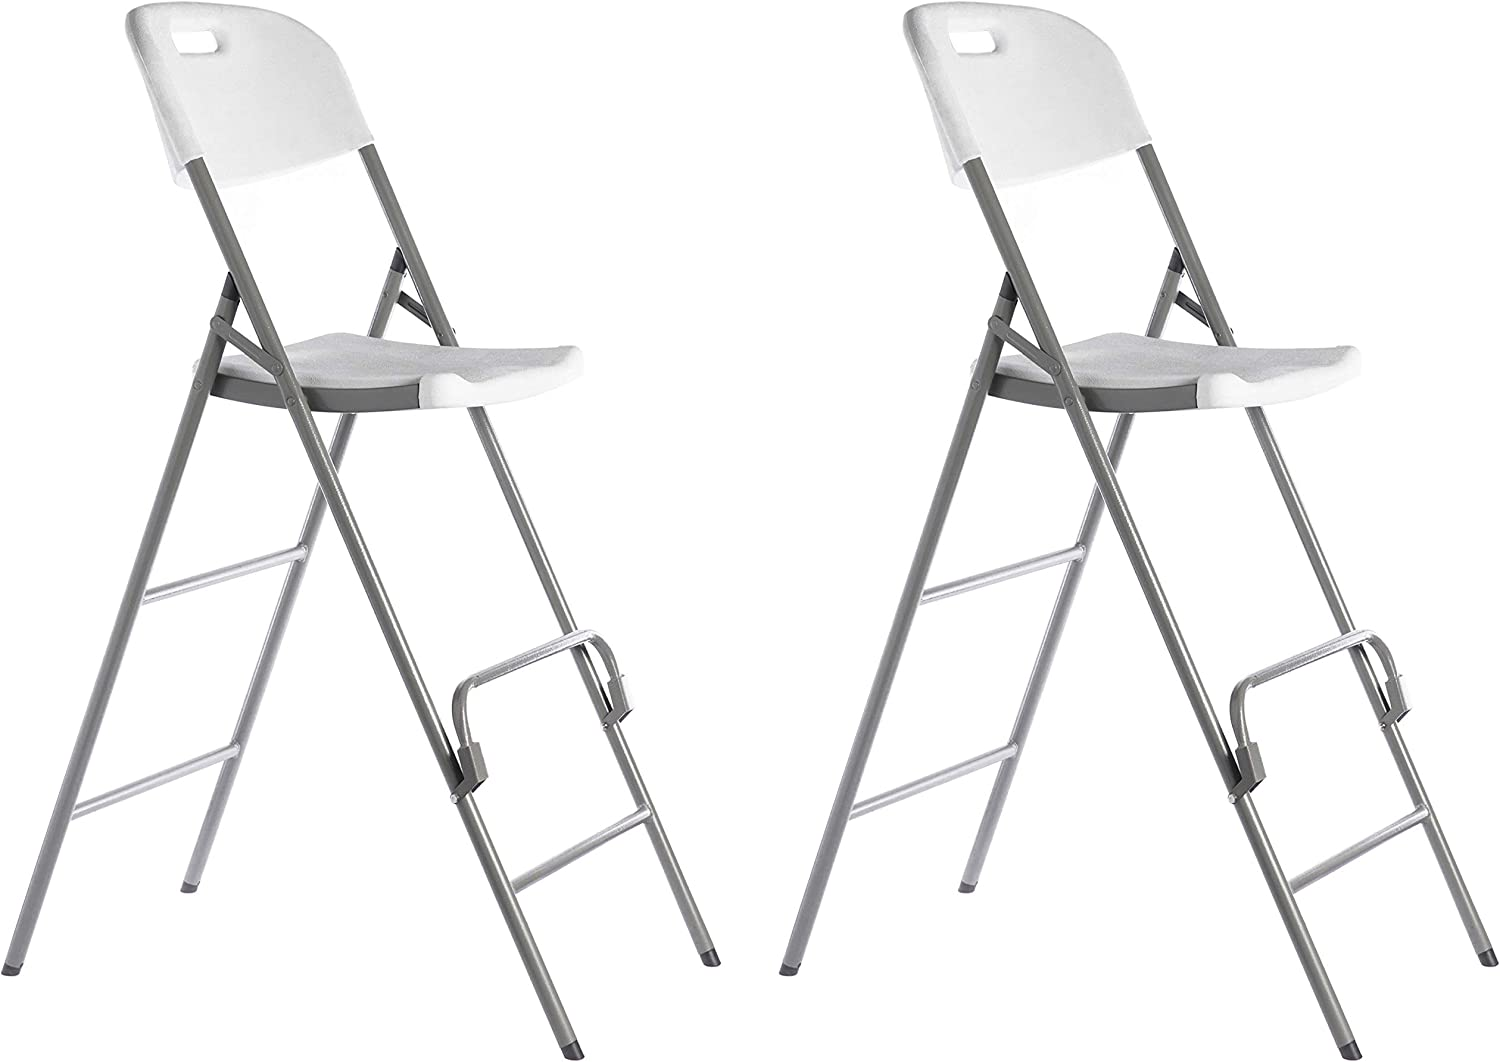 Gardenised QI003728.2 Folding Indoor and Outdoor Use Tall Triple Braced Garden Patio, Set of 2 Chairs